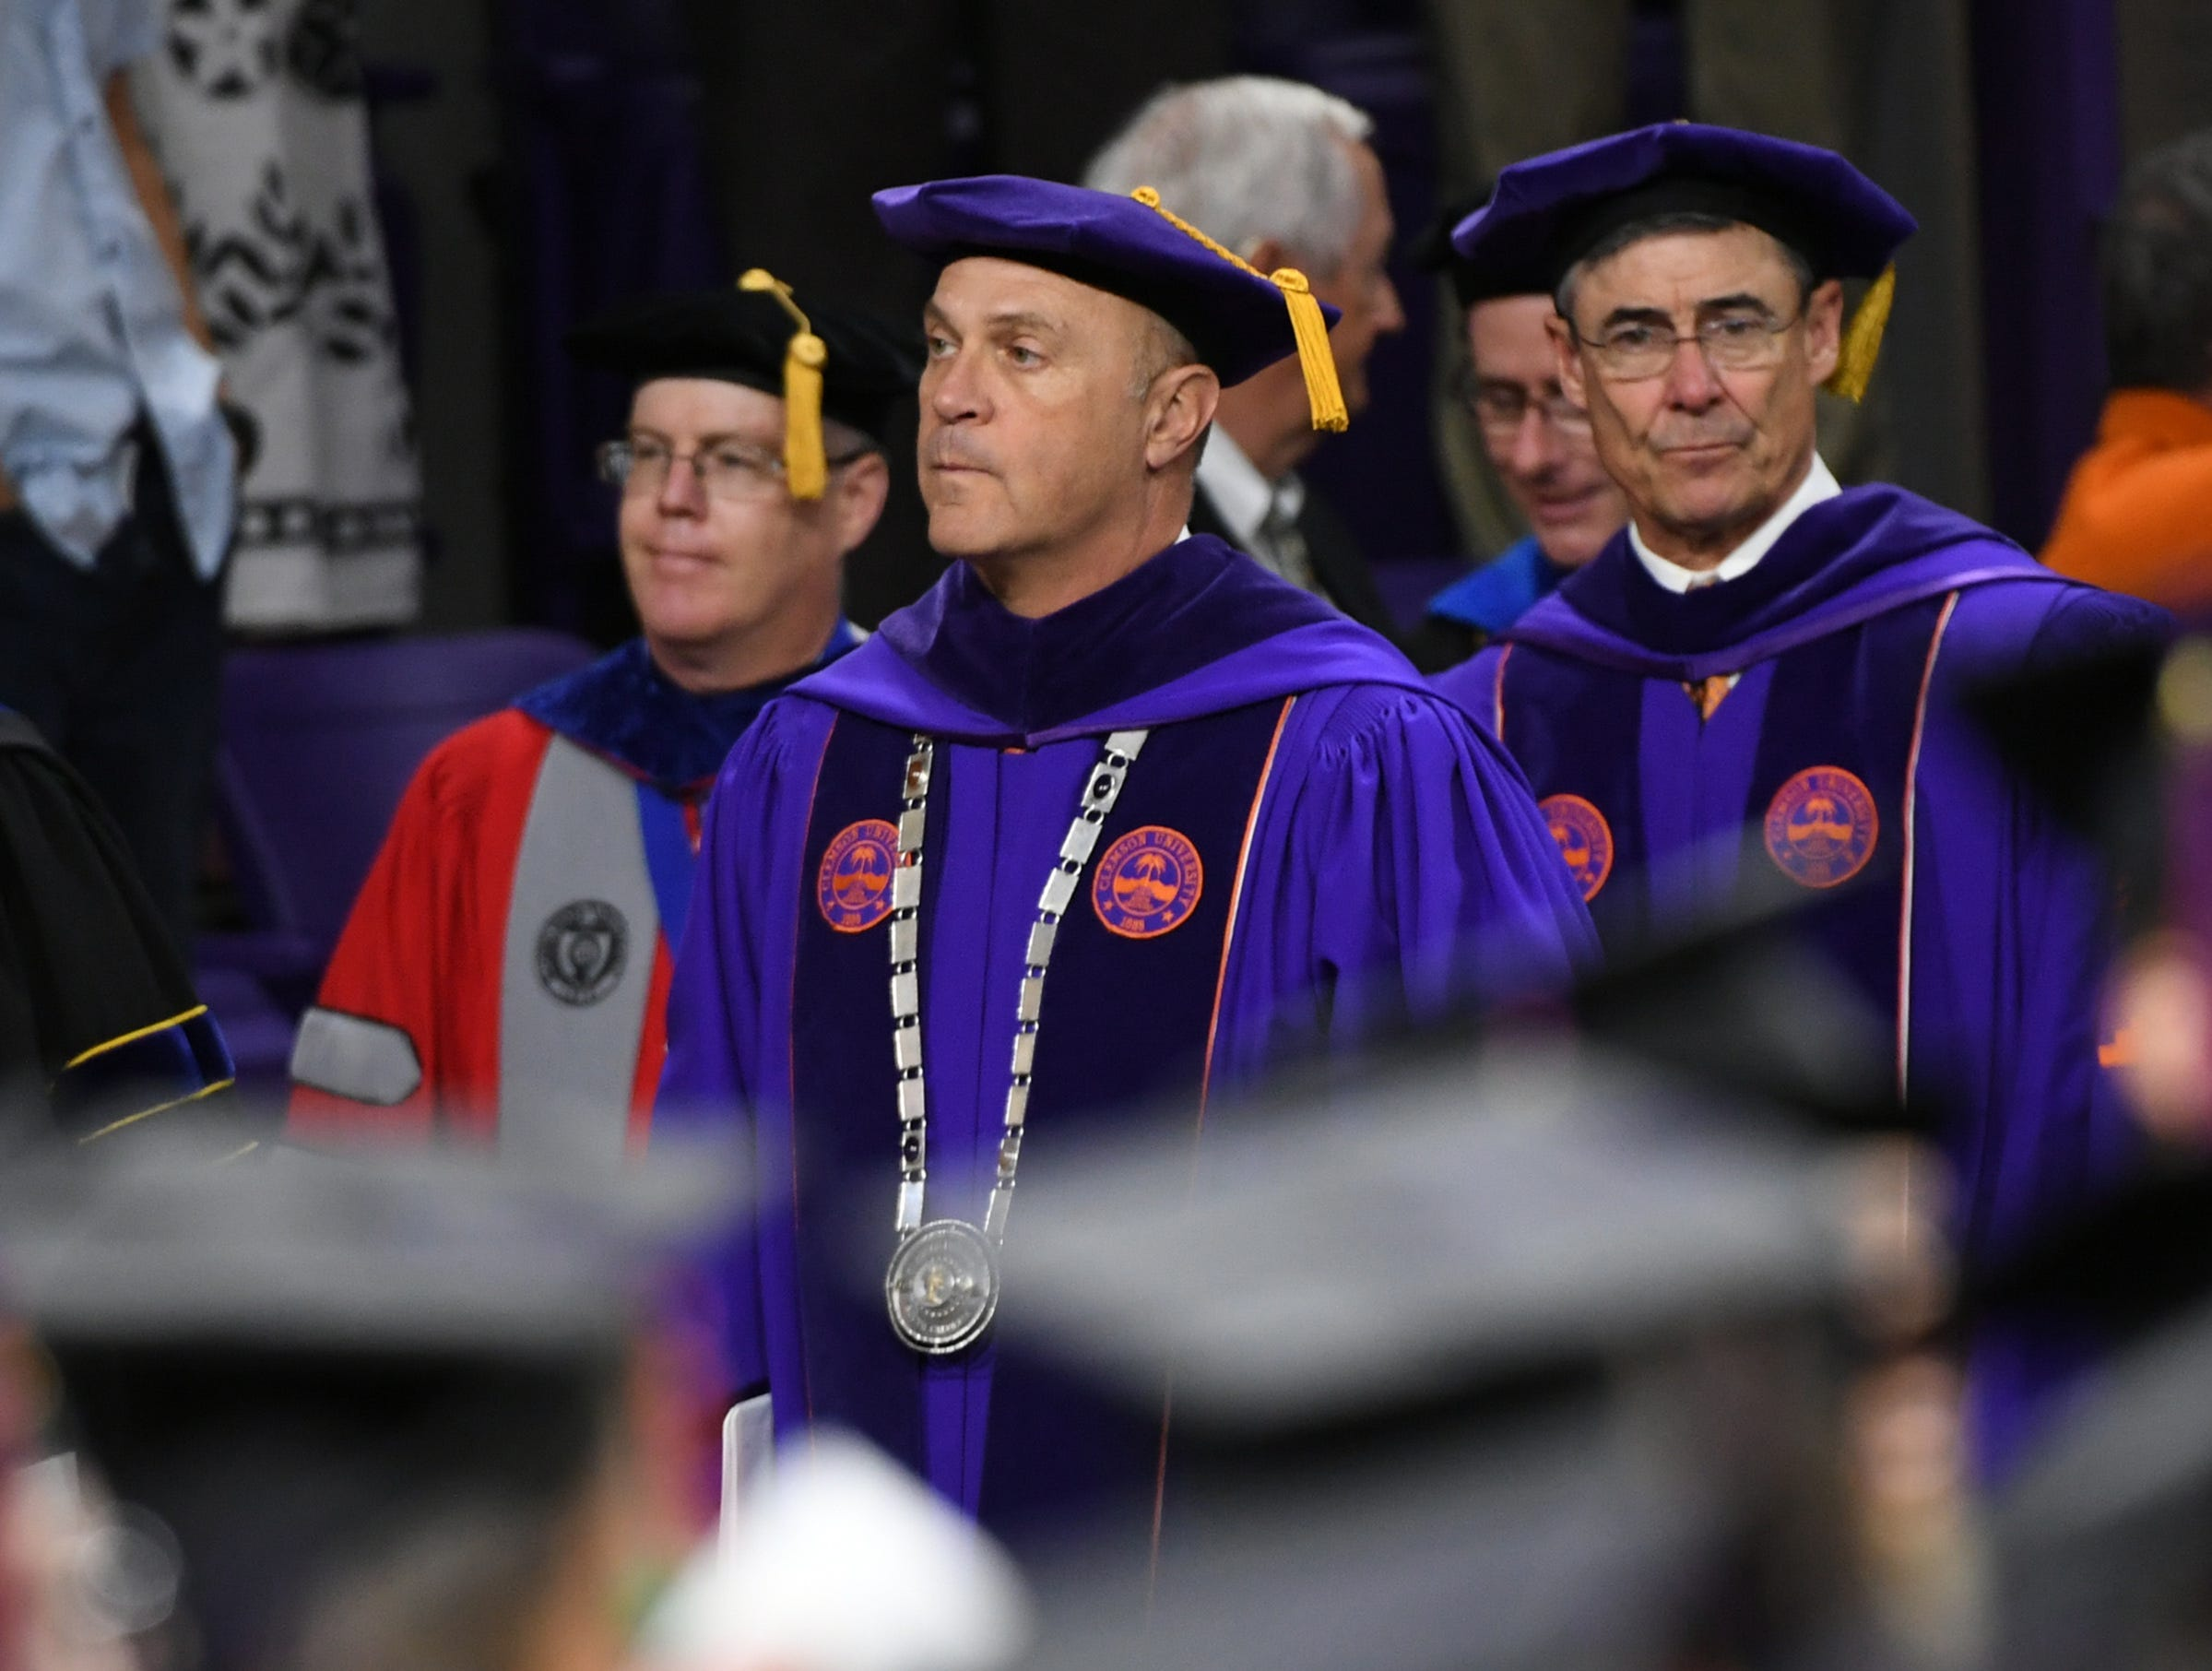 President Jim Clements leads board of trustees during Clemson University commencement ceremonies in Littlejohn Coliseum in Clemson Friday, May 10, 2019.